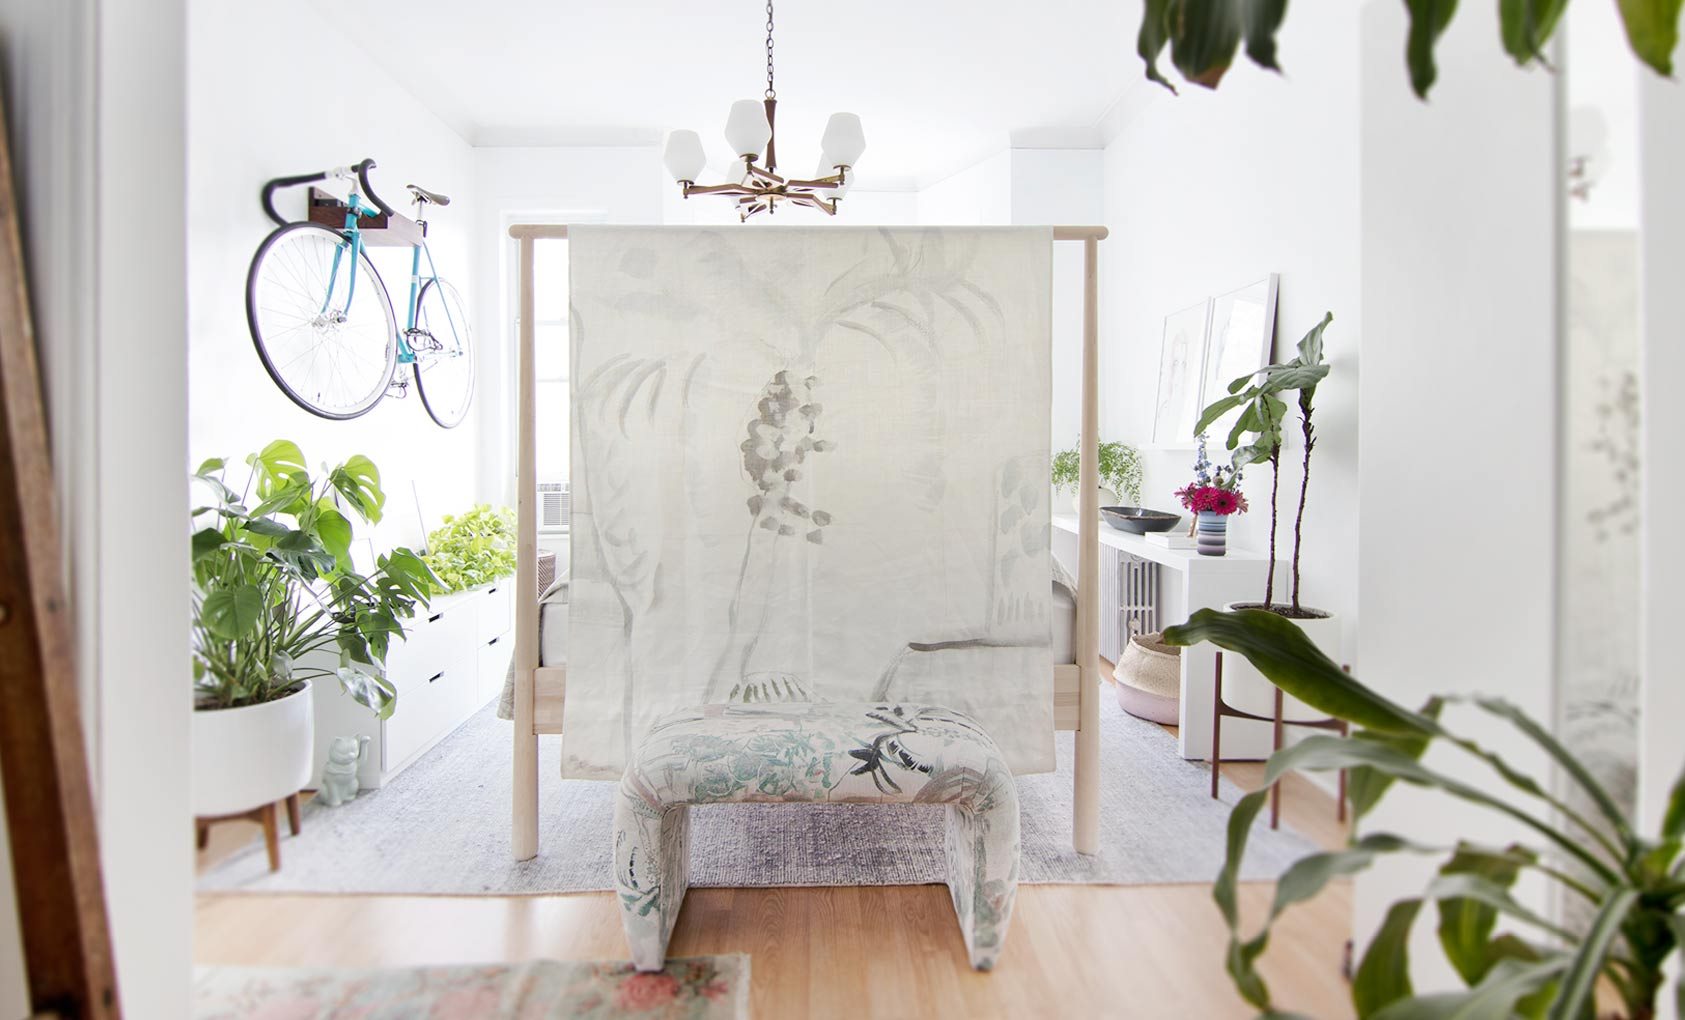 Learning the Art of Compromise in Brooklyn, Design*Sponge